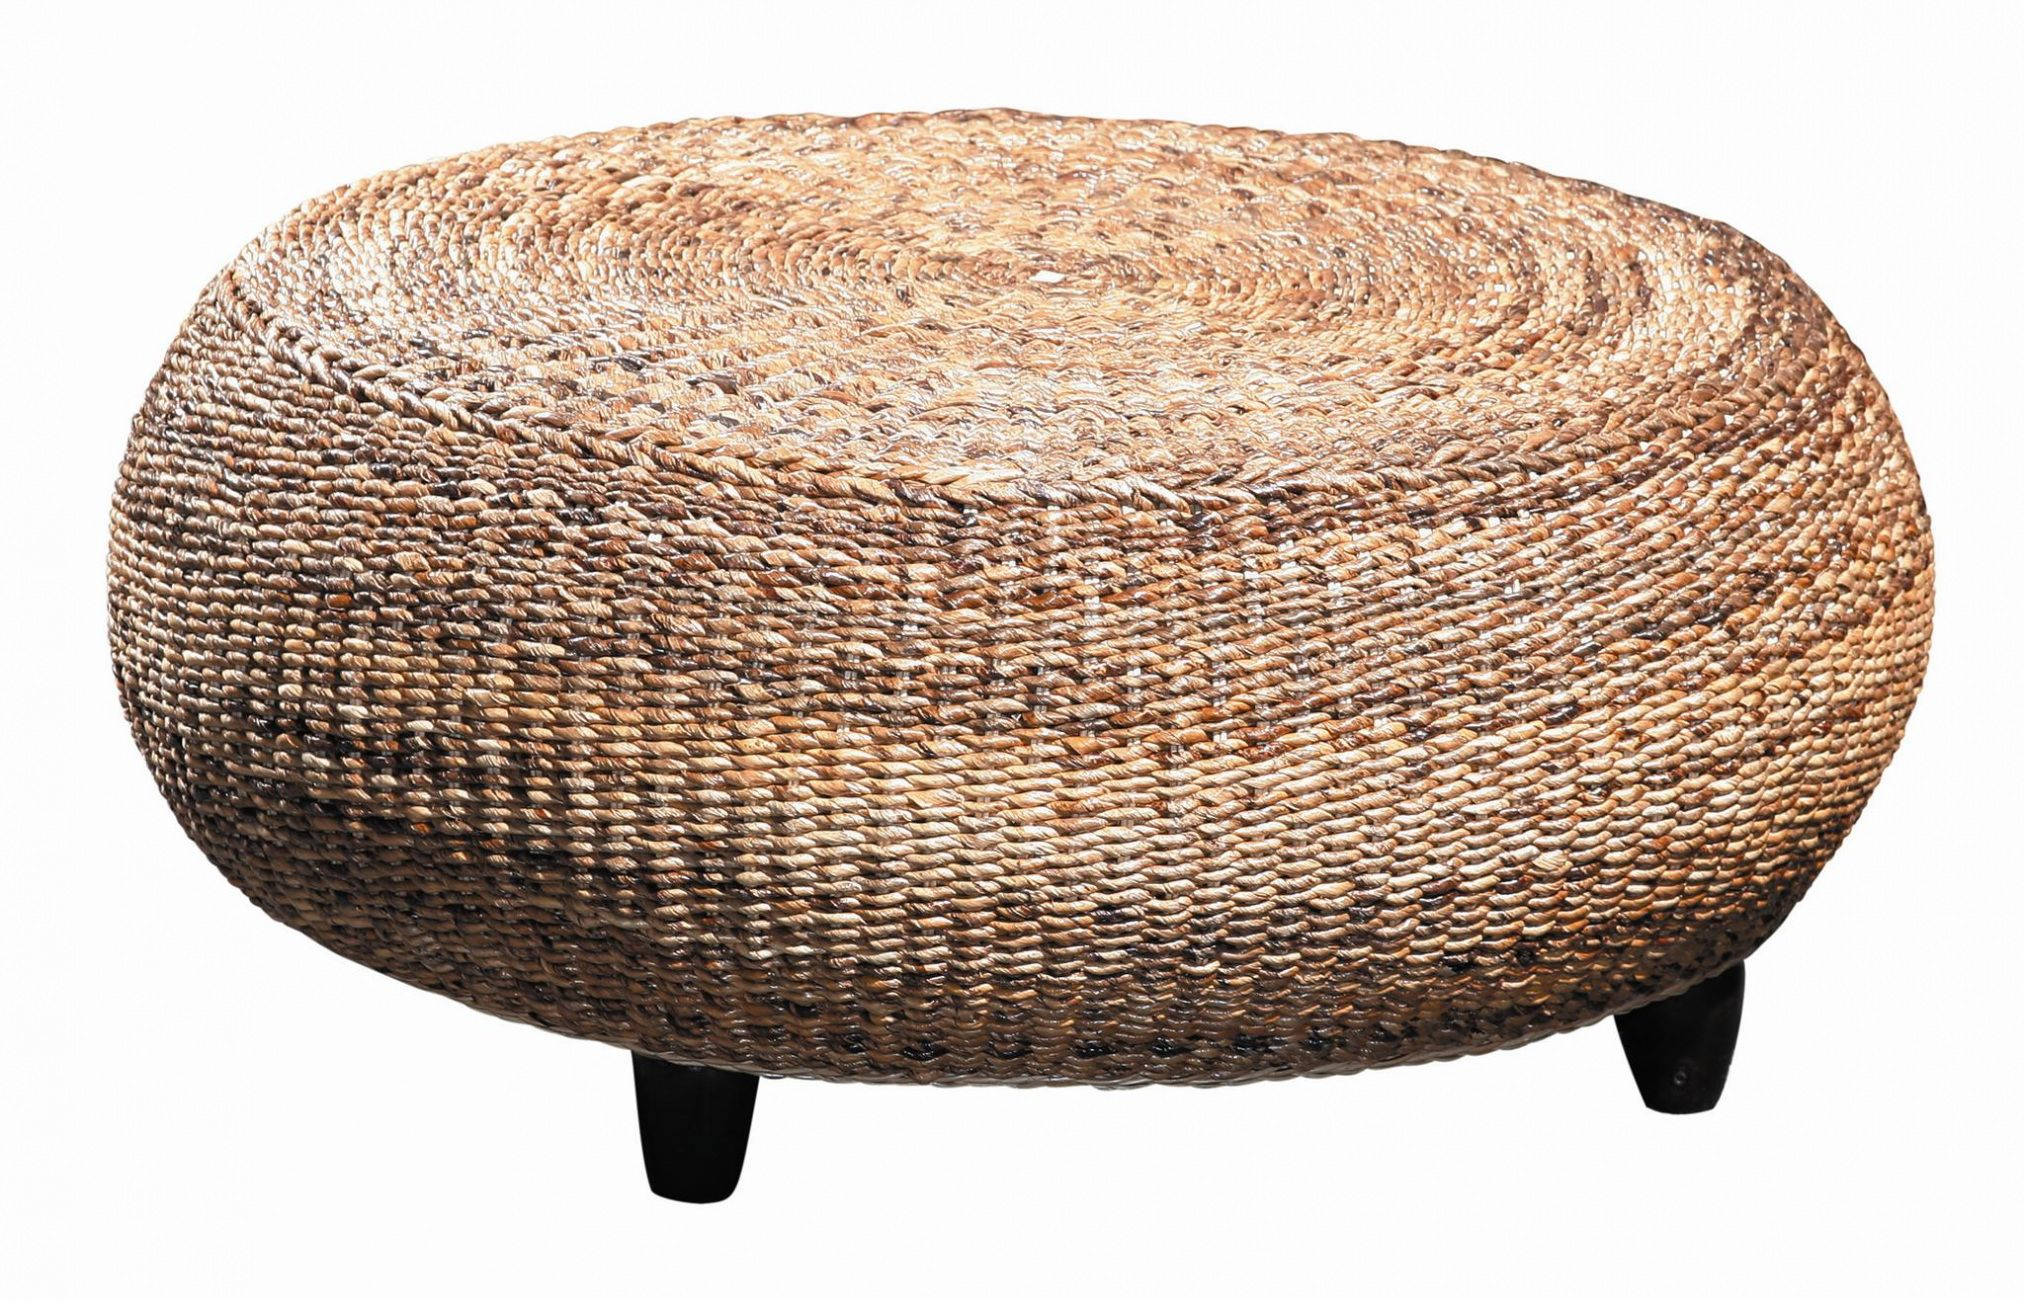 Superieur 20 Round Wicker Coffee Table Ottoman   Custom Home Office Furniture Check  More At Http: